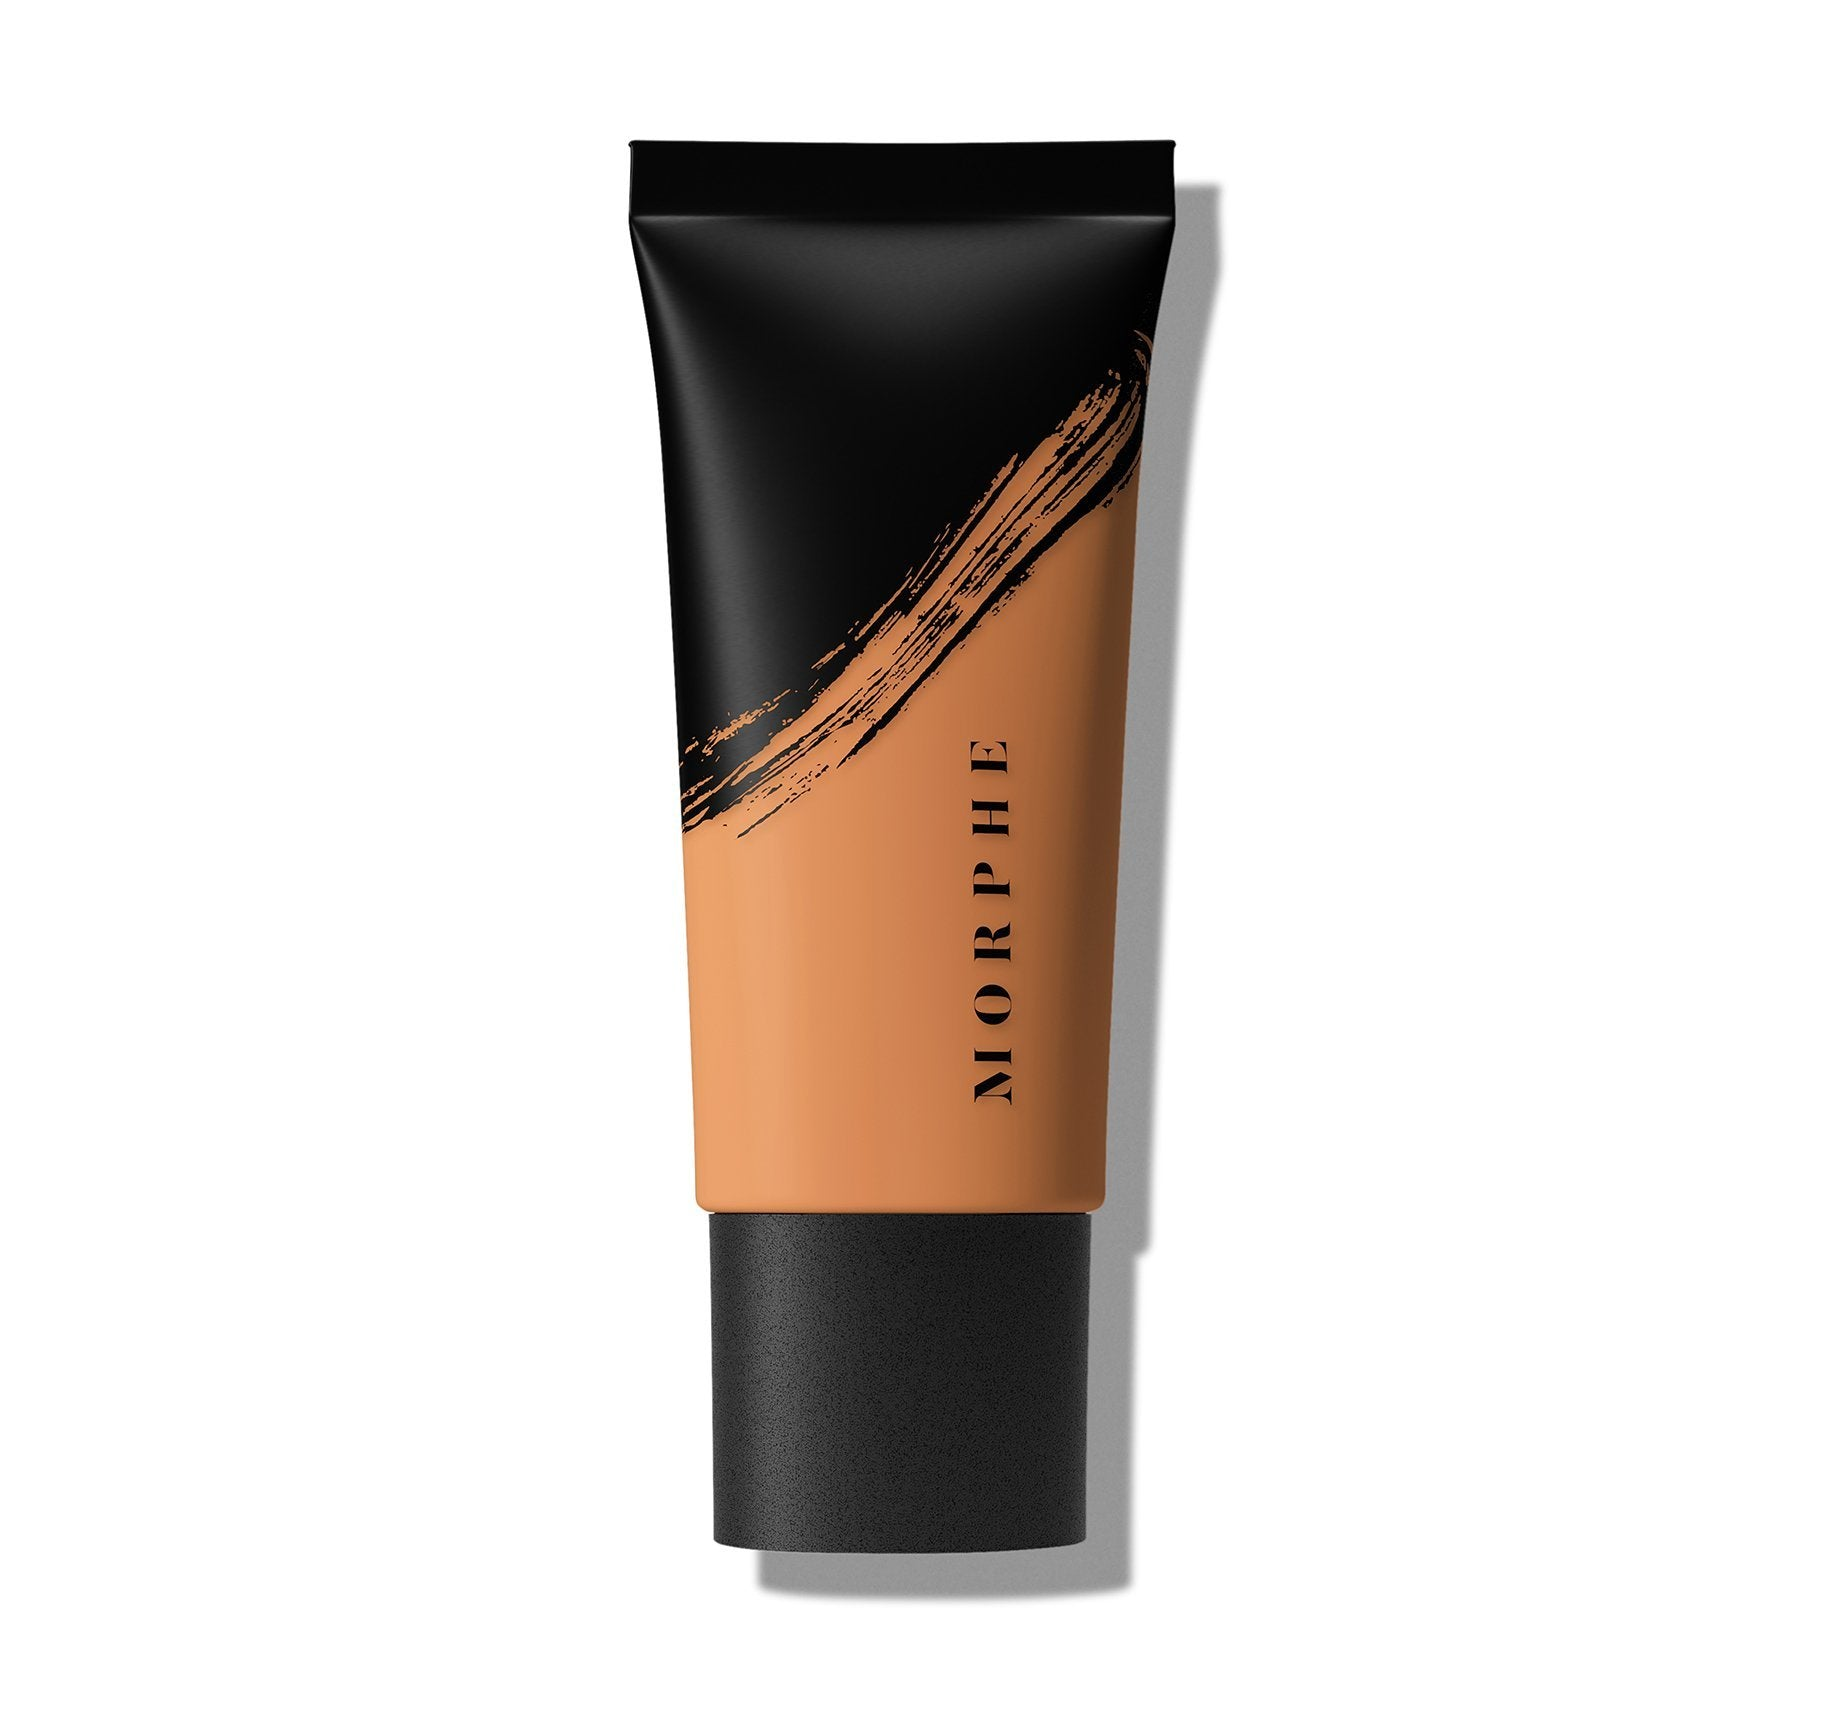 FLUIDITY FULL-COVERAGE FOUNDATION - F3.39, view larger image